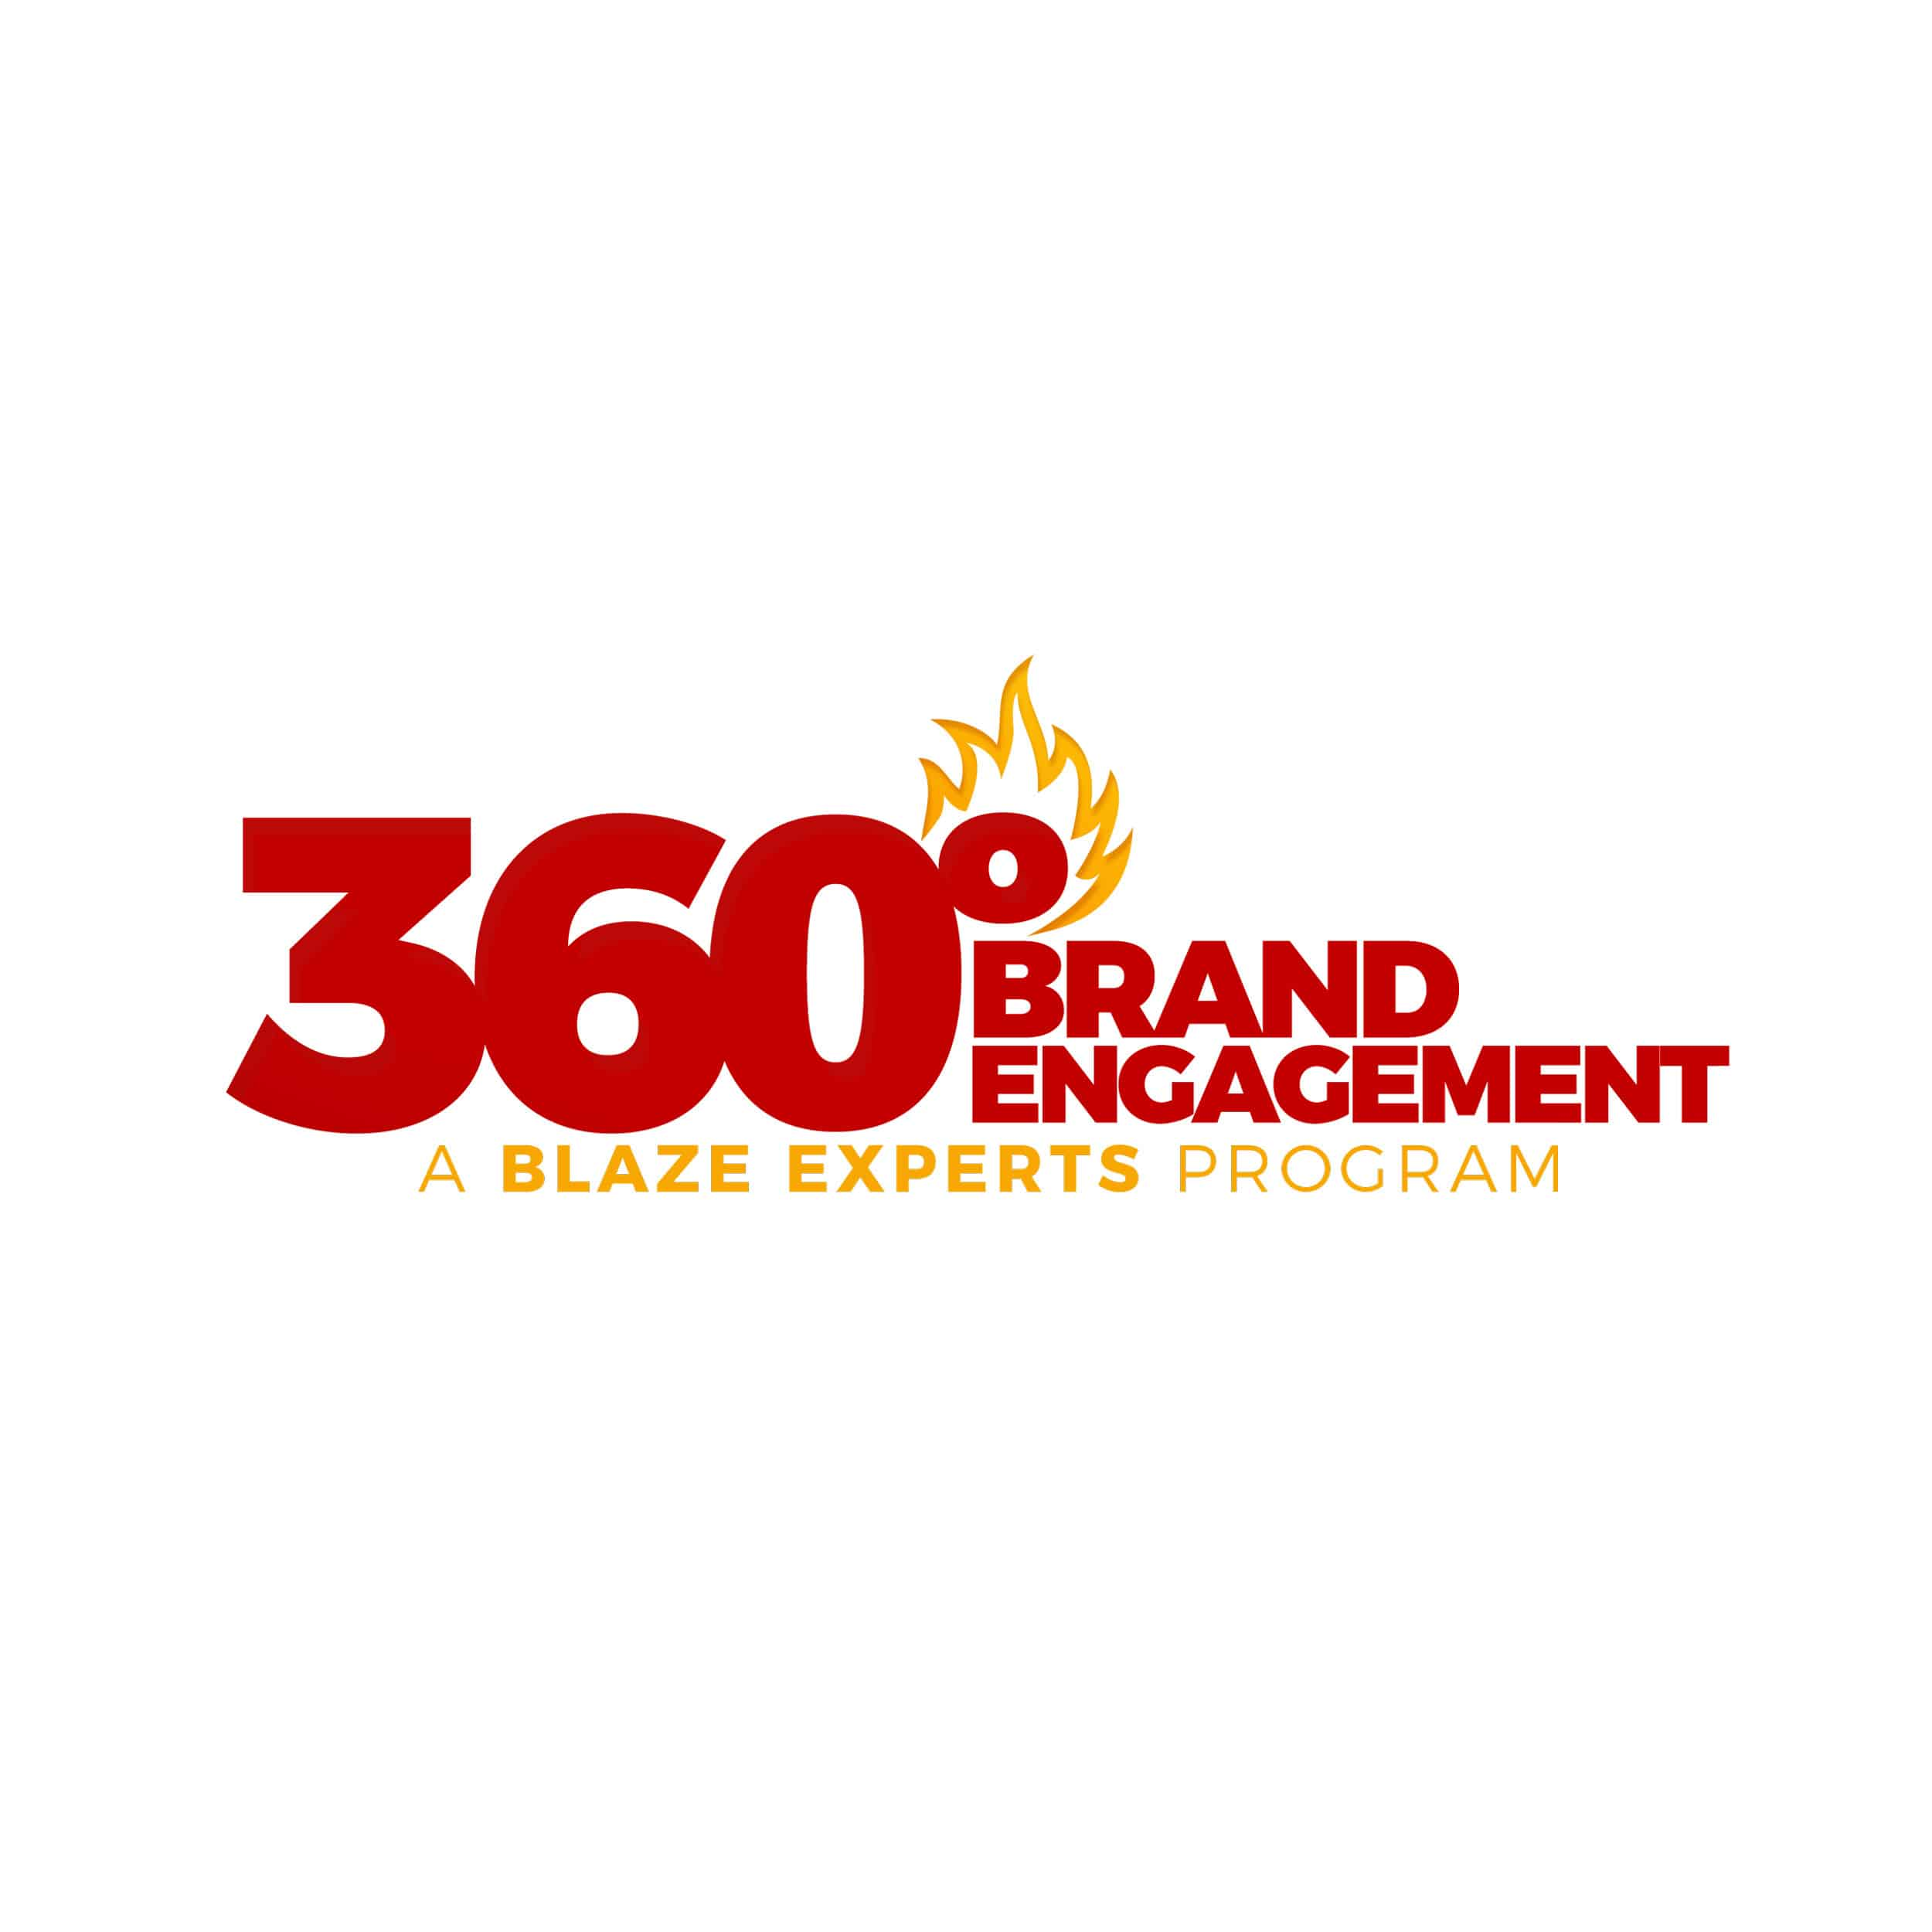 360 Degree Brand Engagement by Blaze Experts